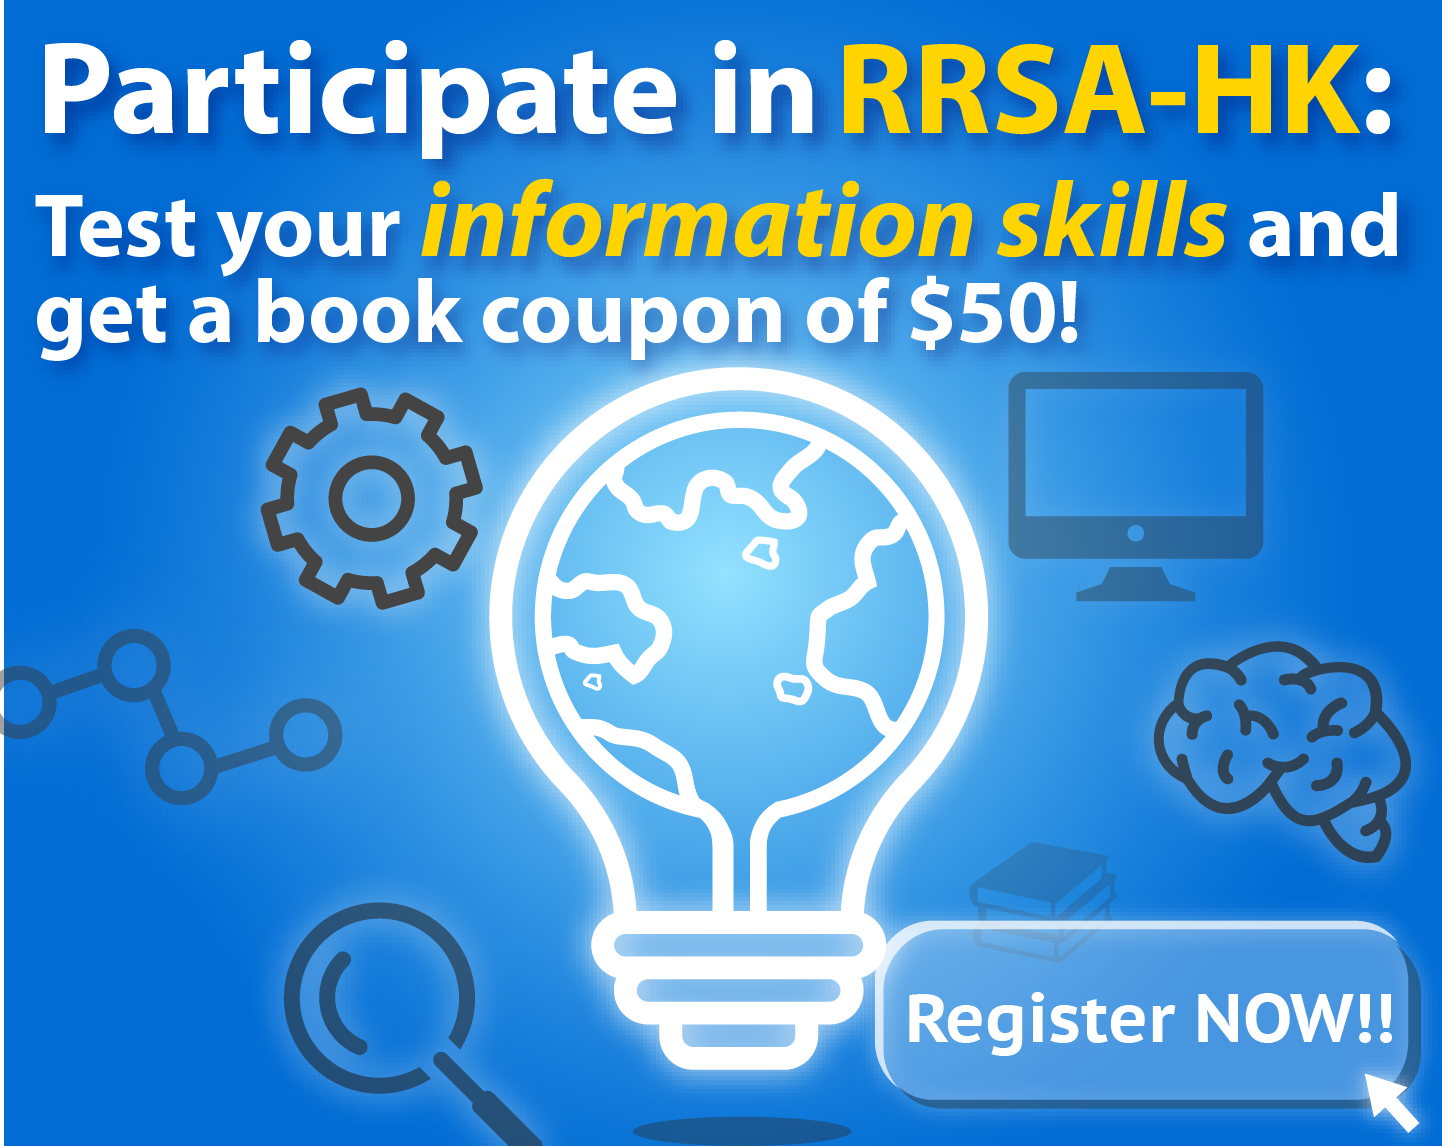 RRSA 2016, click here to register